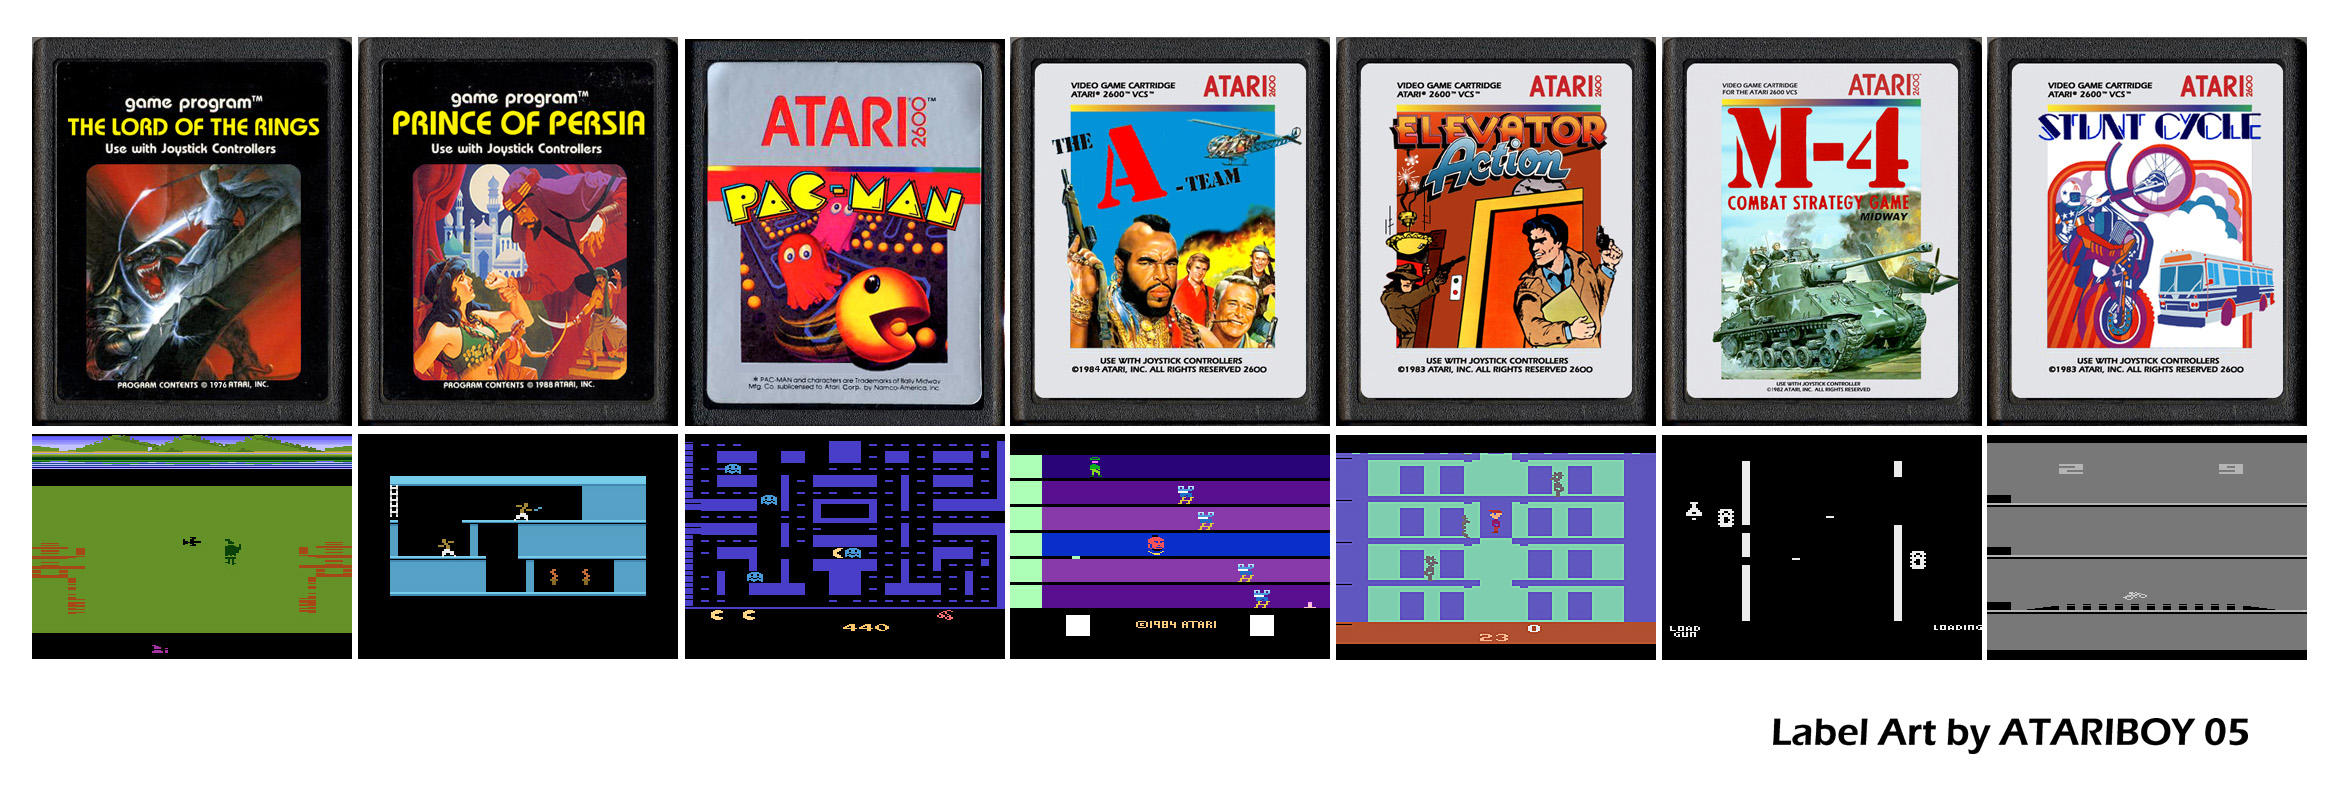 Atari Labels Art - 2600 by Atariboy2600